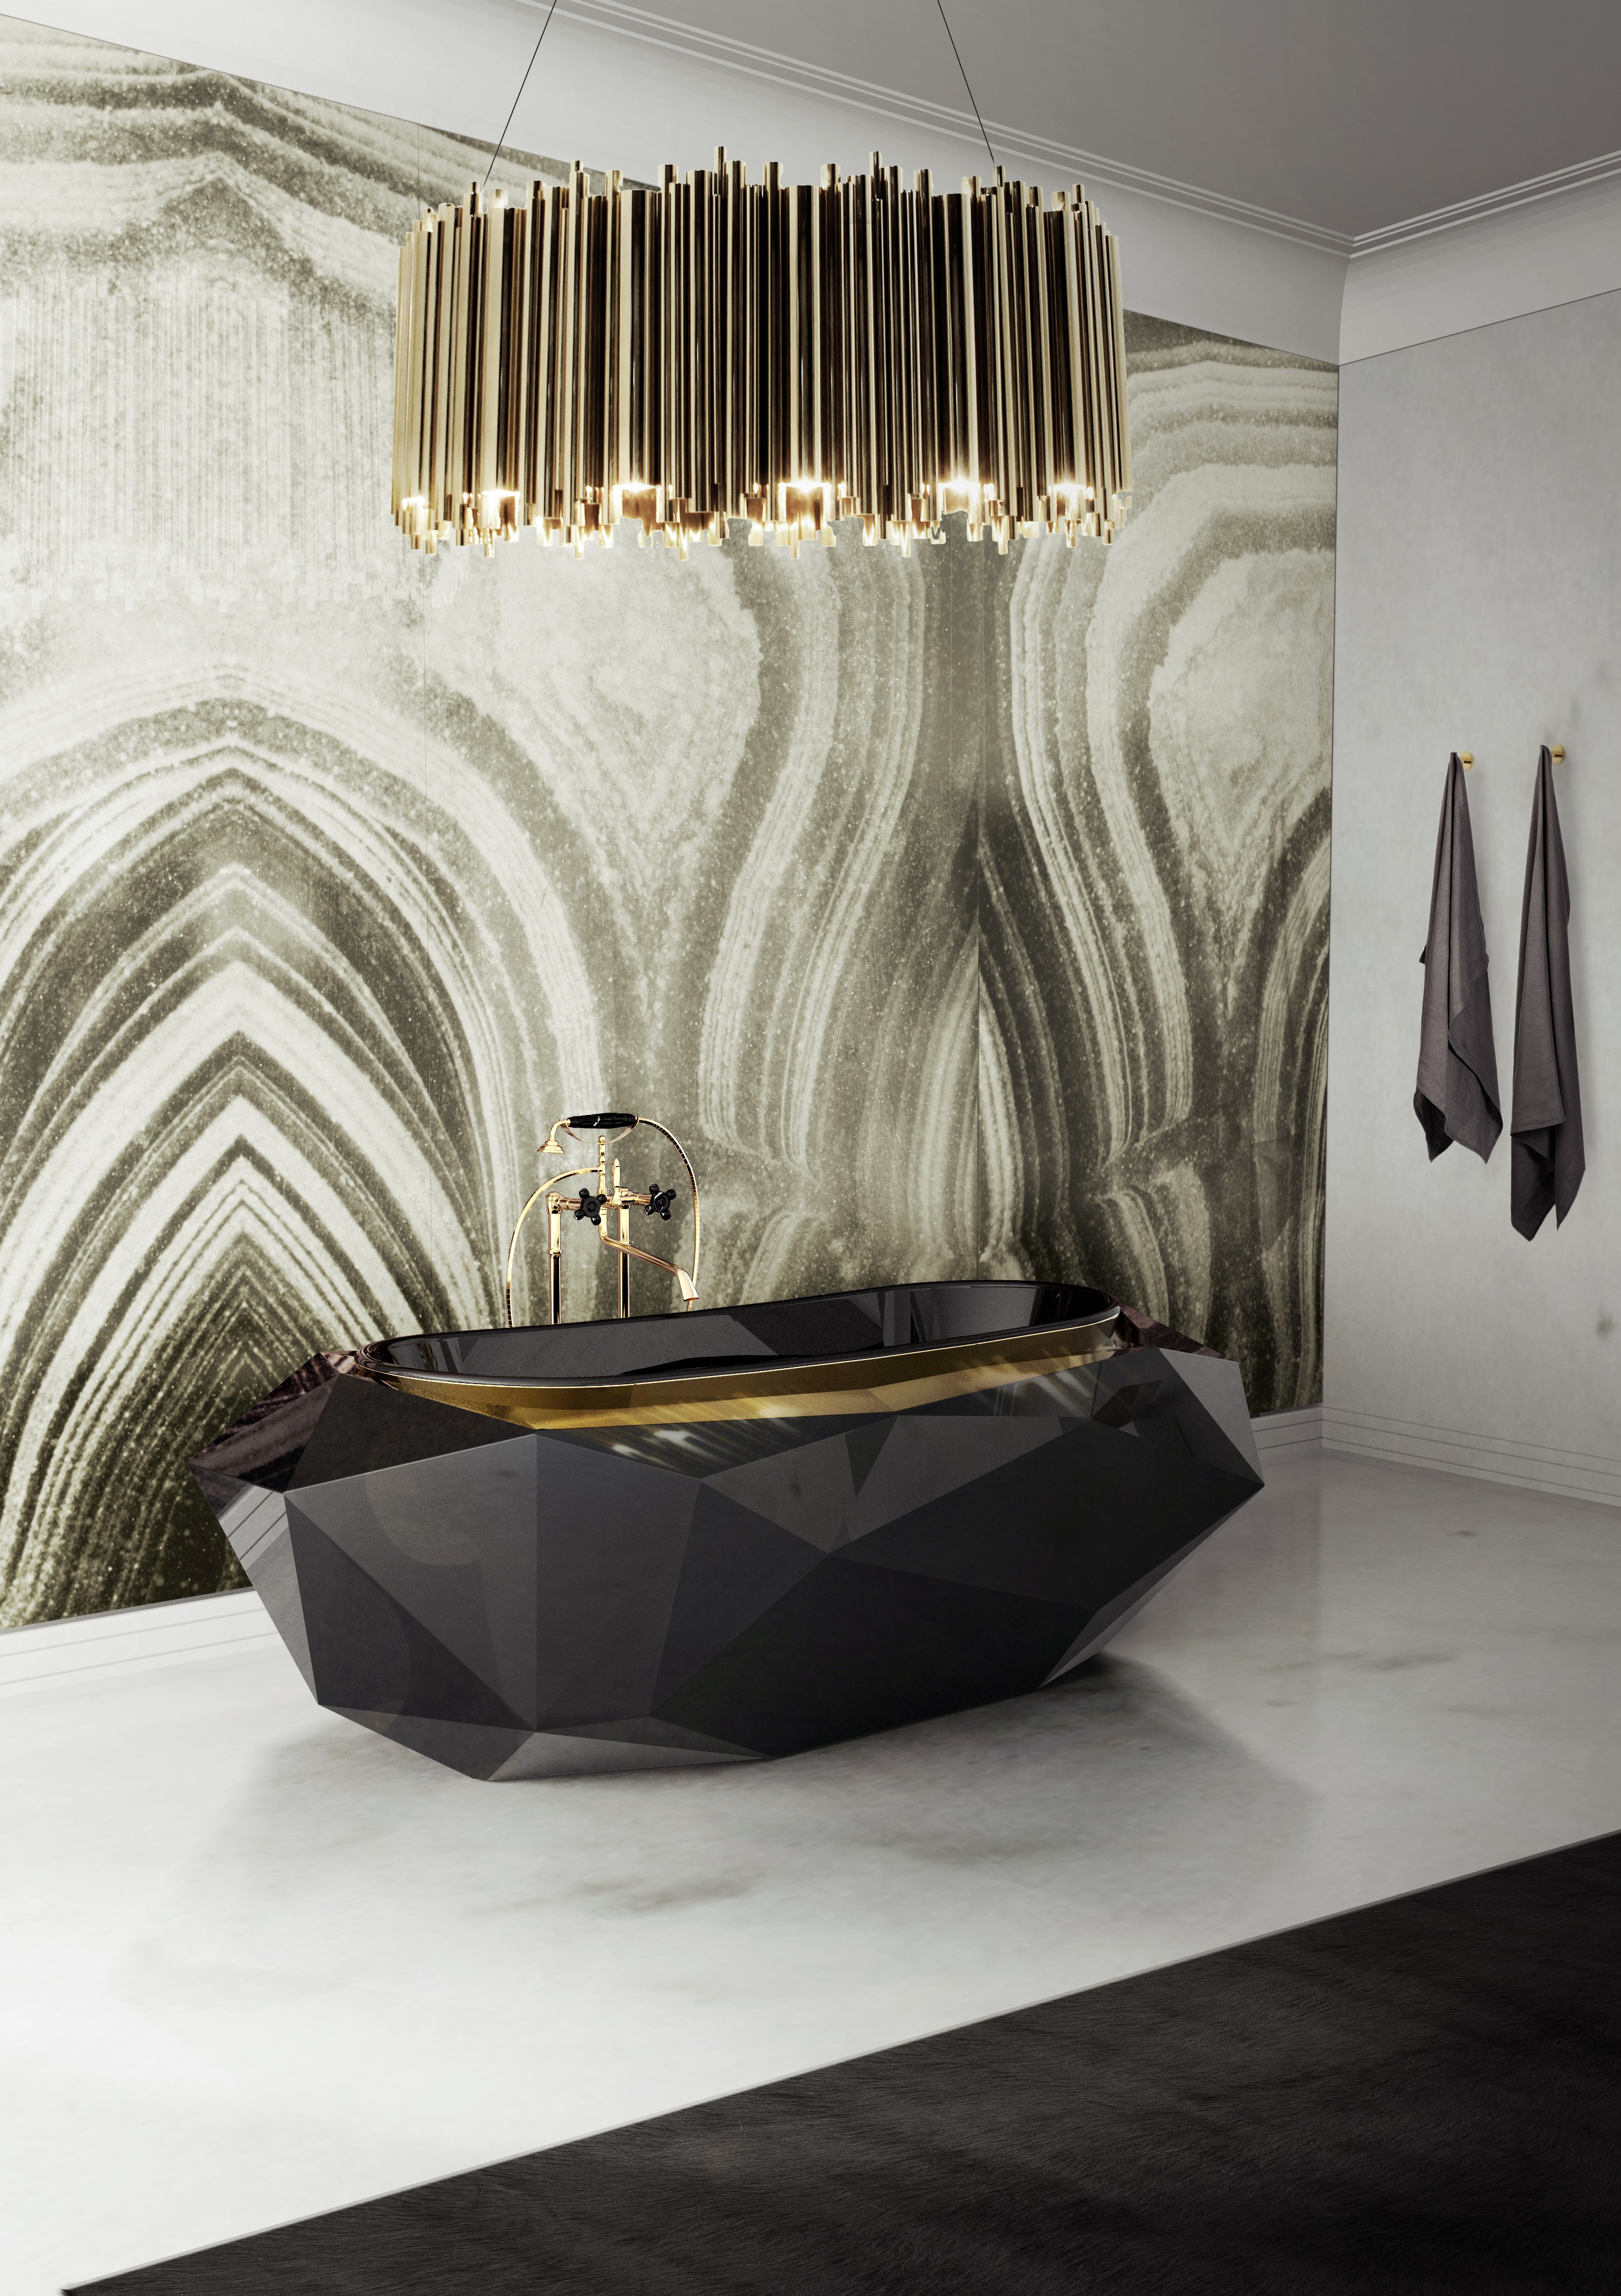 September Edition: Luxury Must-Haves Of The Month September Edition September Edition: Luxury Must-Haves Of The Month a fantastic private oasis with the bold diamond bathtub and the sumptuous matheny suspension